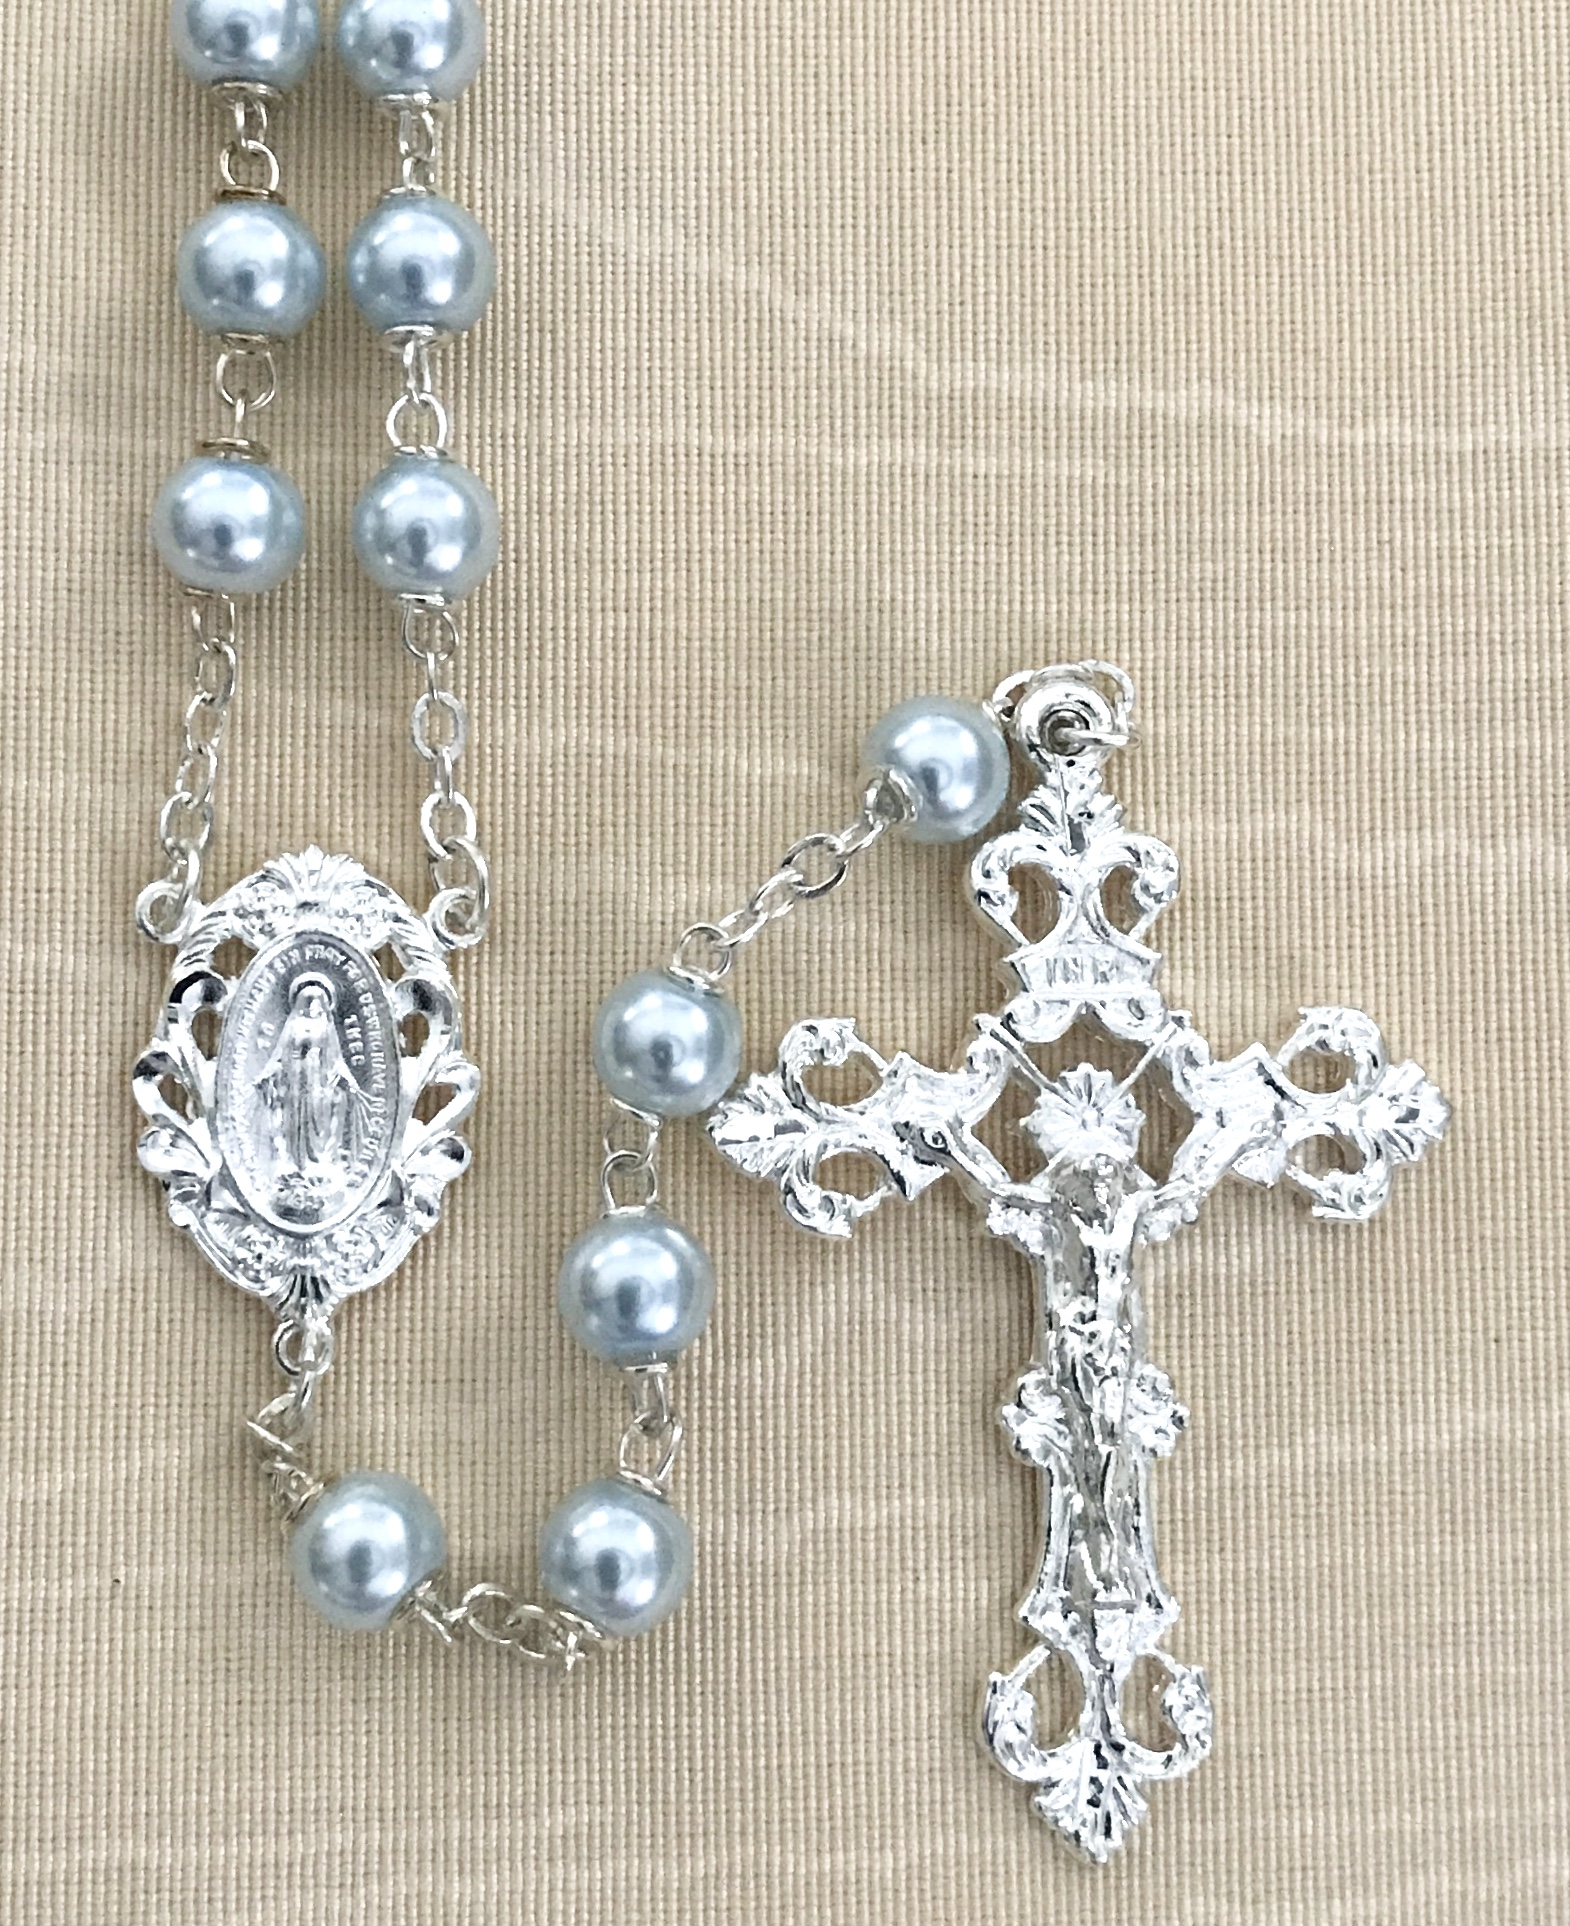 7mm ROUND LIGHT BLUE PEARL ROSARY WITH STERLING SILVER PLATED CRUCIFIX AND CENTER GIFT BOXED